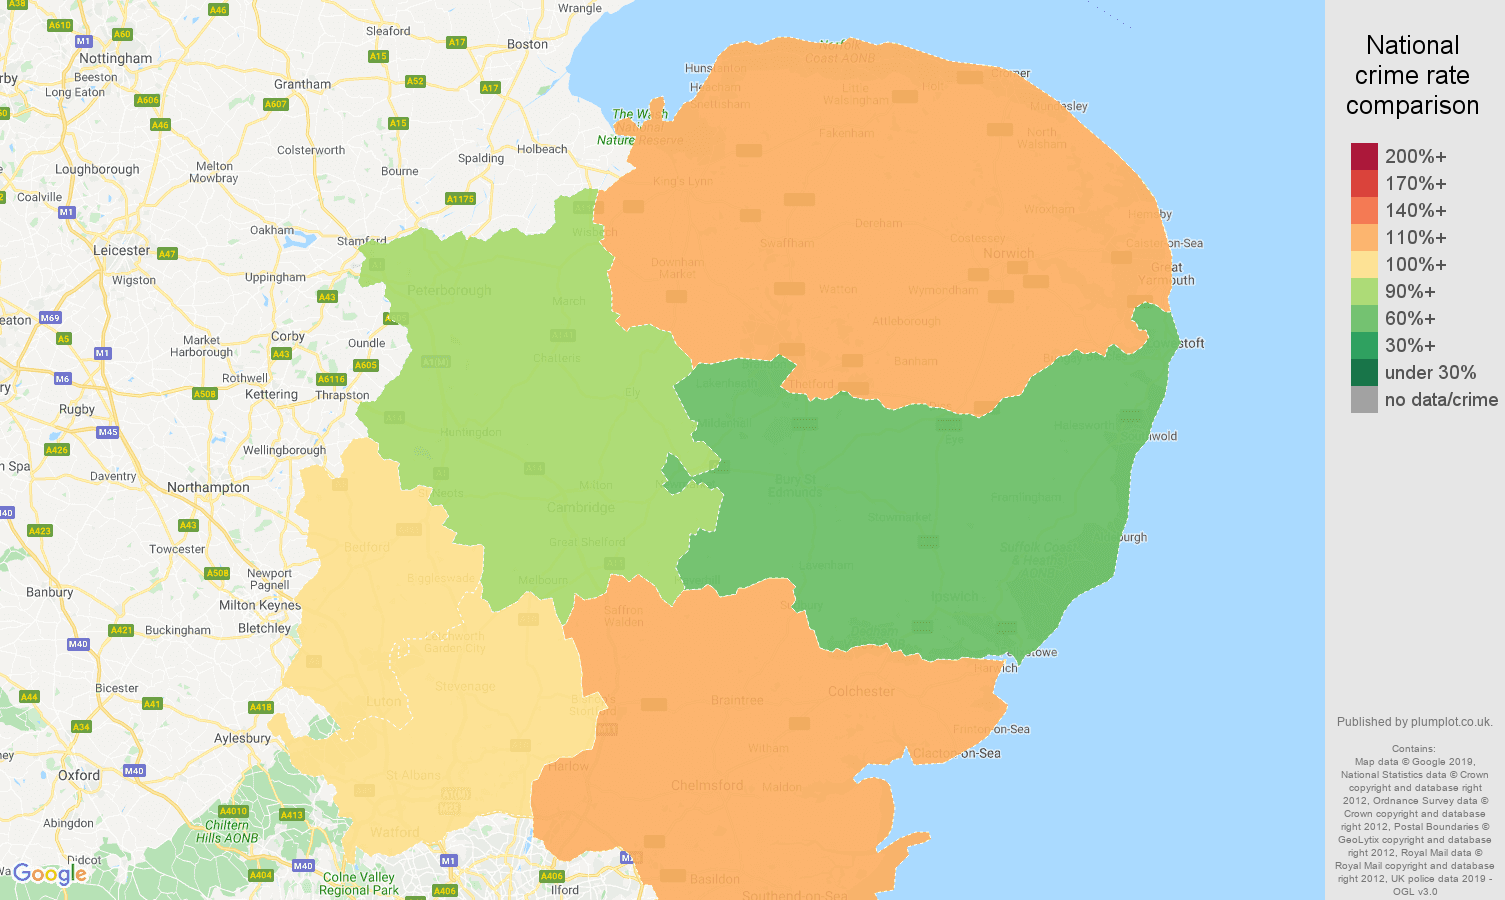 East of England other crime rate comparison map